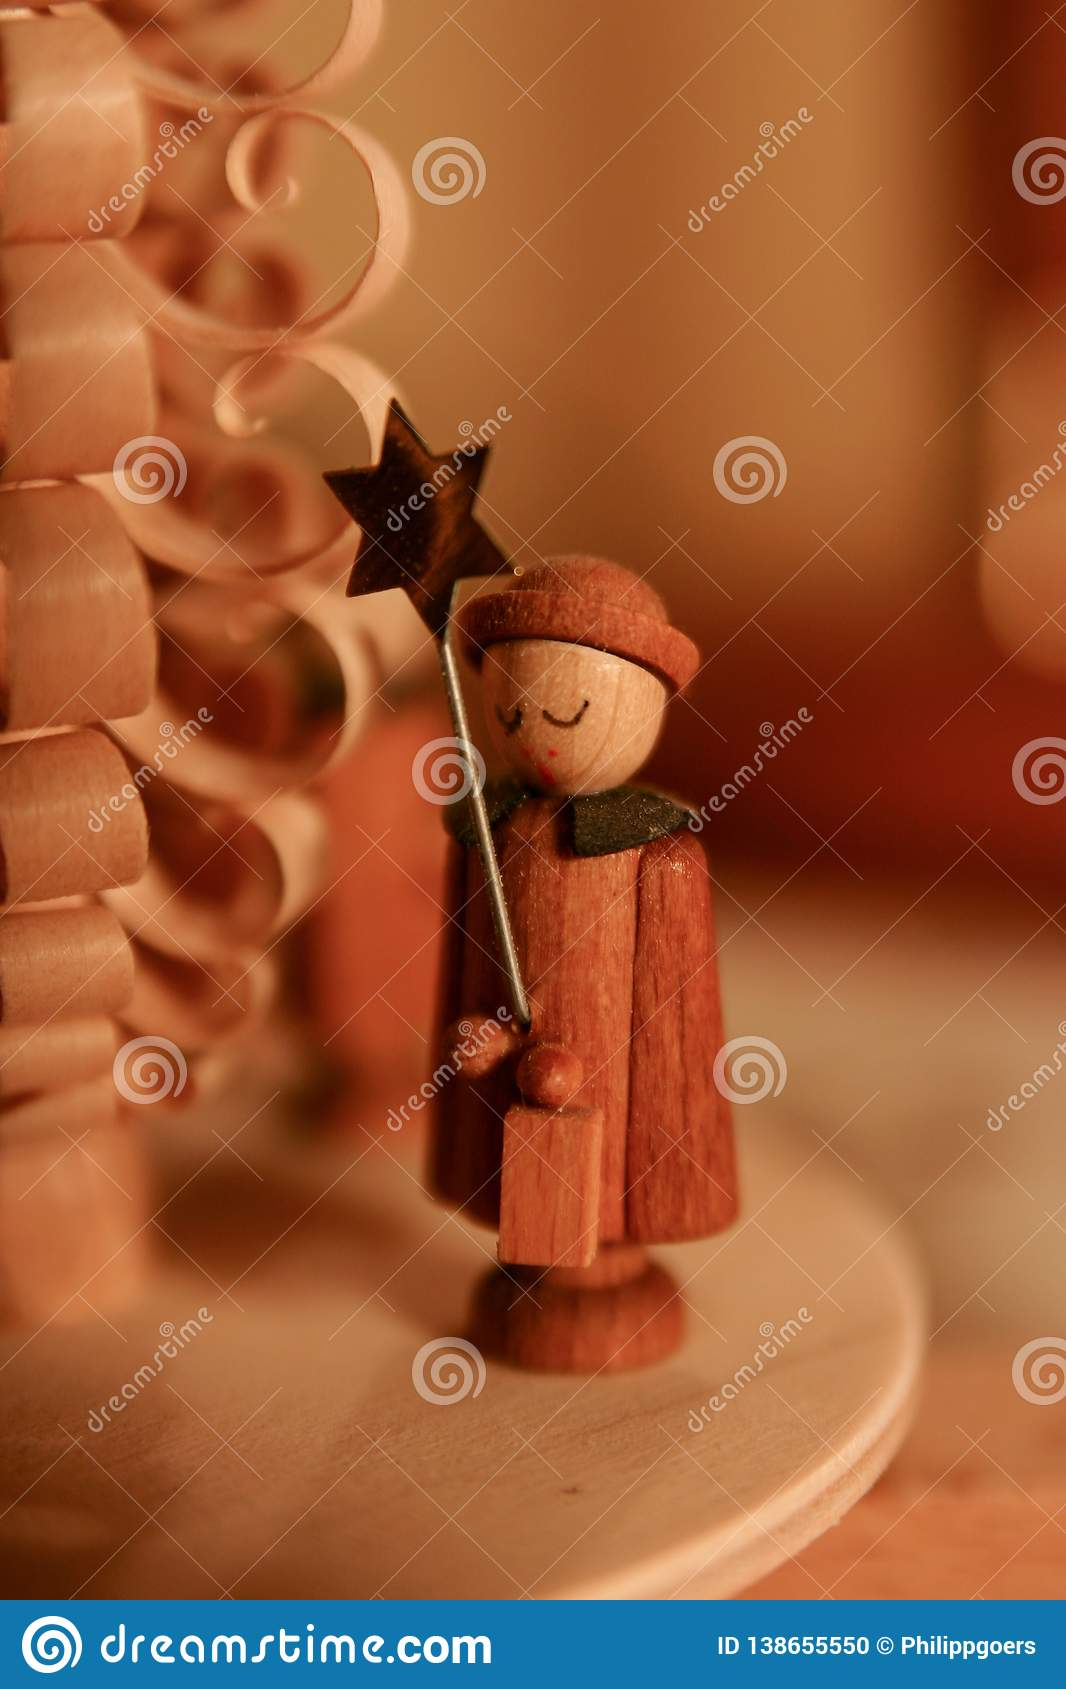 Statue of an angel at a christmas pyramid